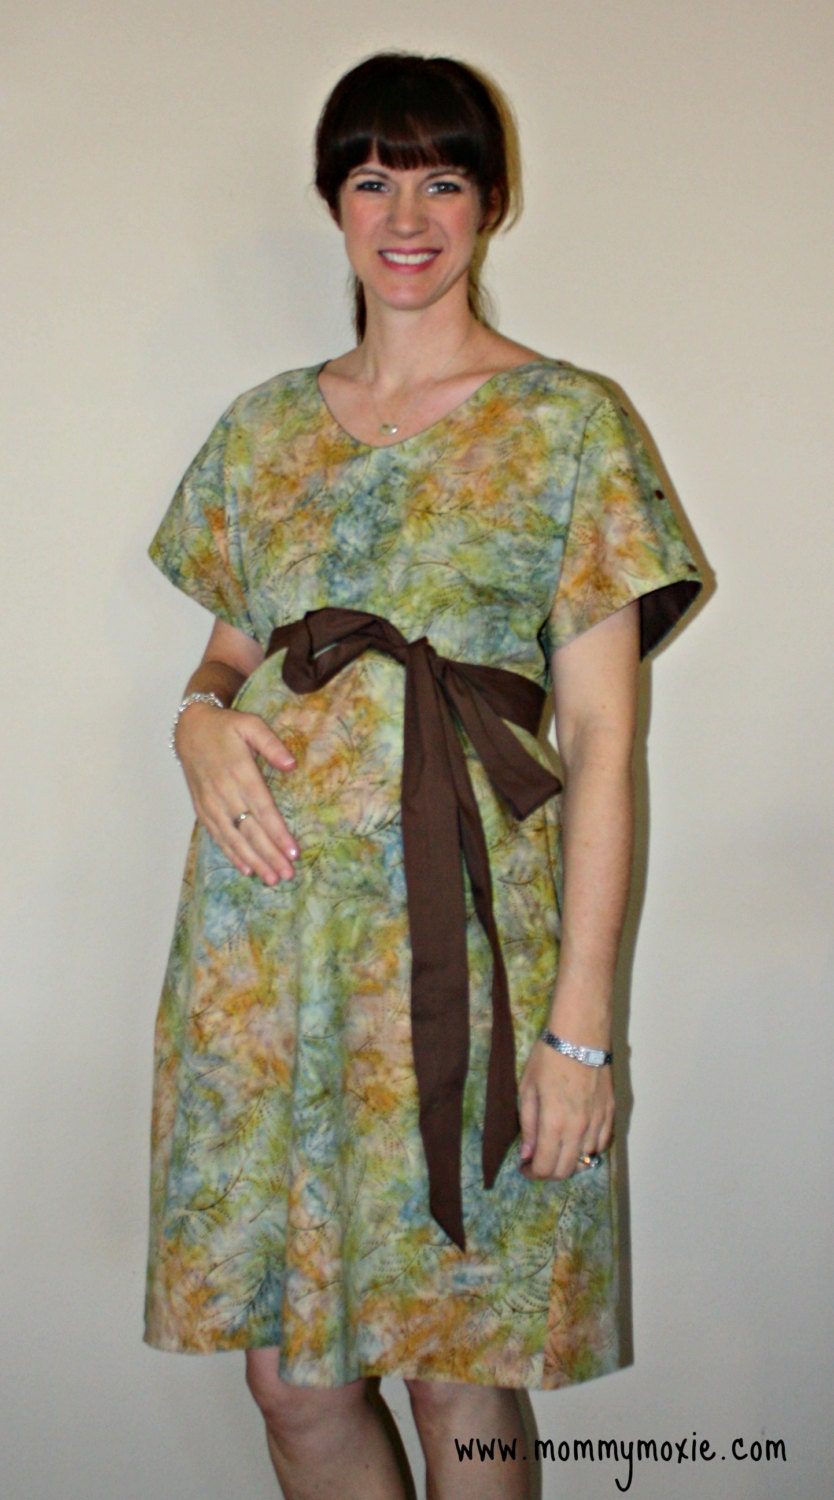 Asher Maternity Hospital Gown - Brown Green Batik Print - Lined in Your Choice of Colors - By Mommy Moxie on Etsy Deliver in Style - MommyMoxie